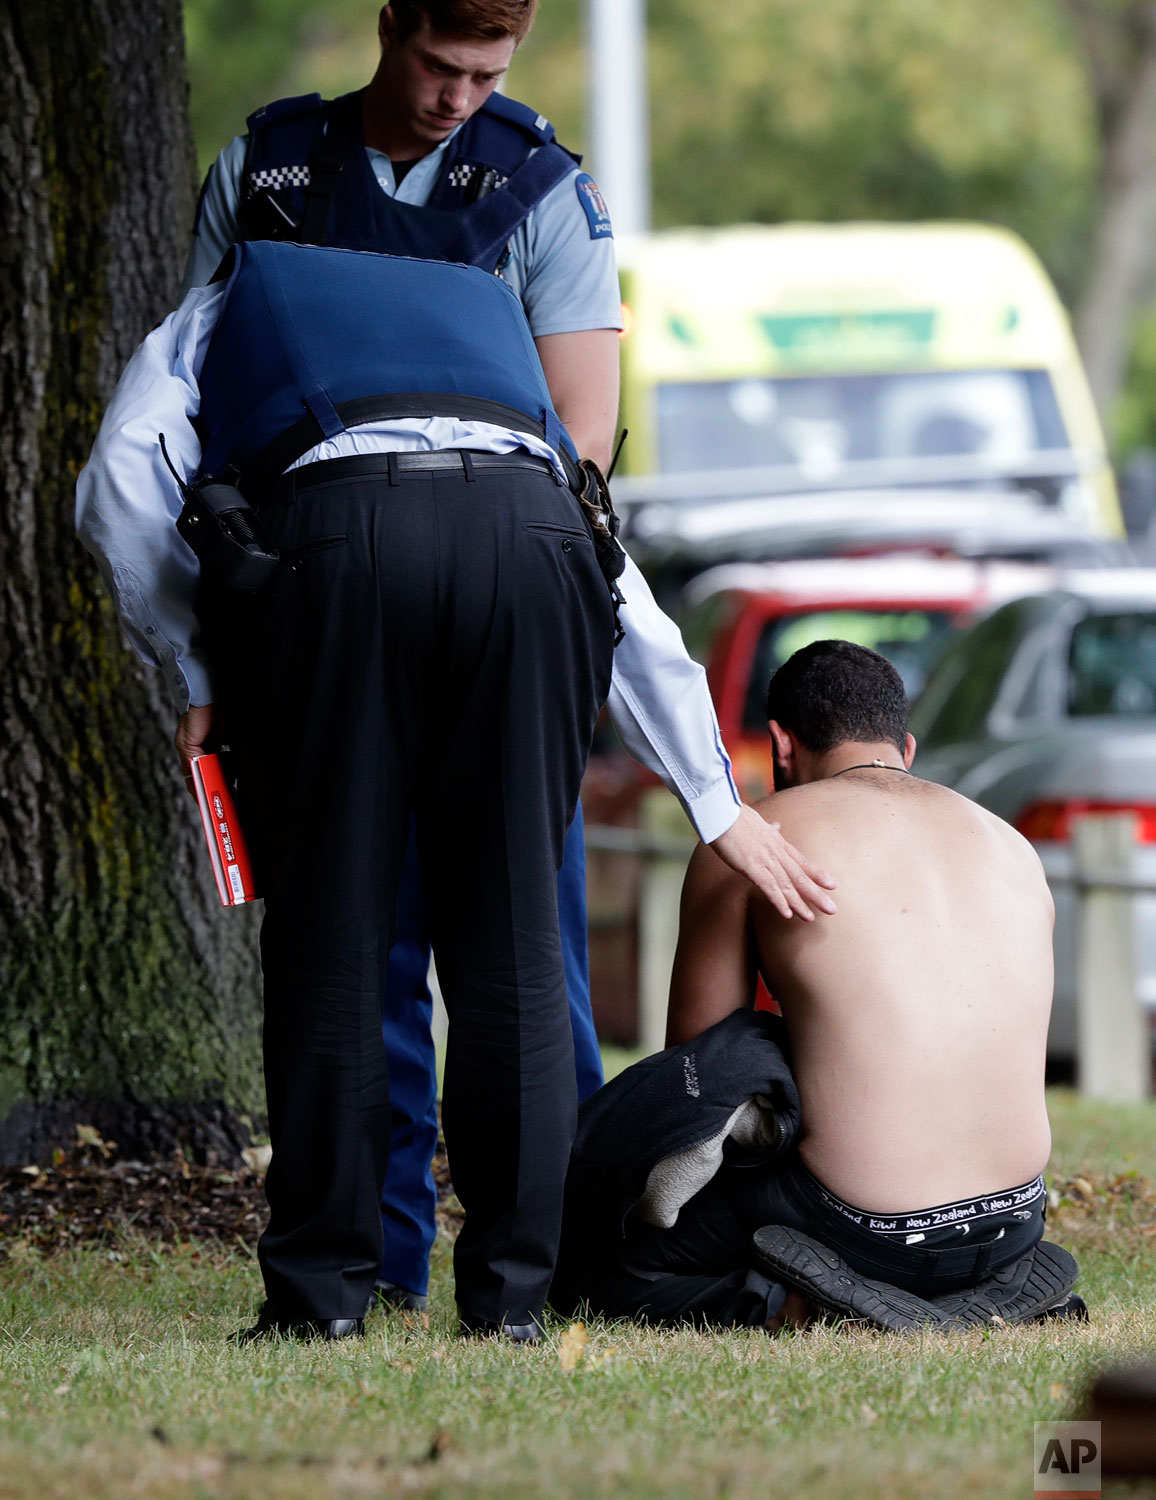 Police console a man outside a mosque in central Christchurch, New Zealand, Friday, March 15, 2019. (AP Photo/Mark Baker)